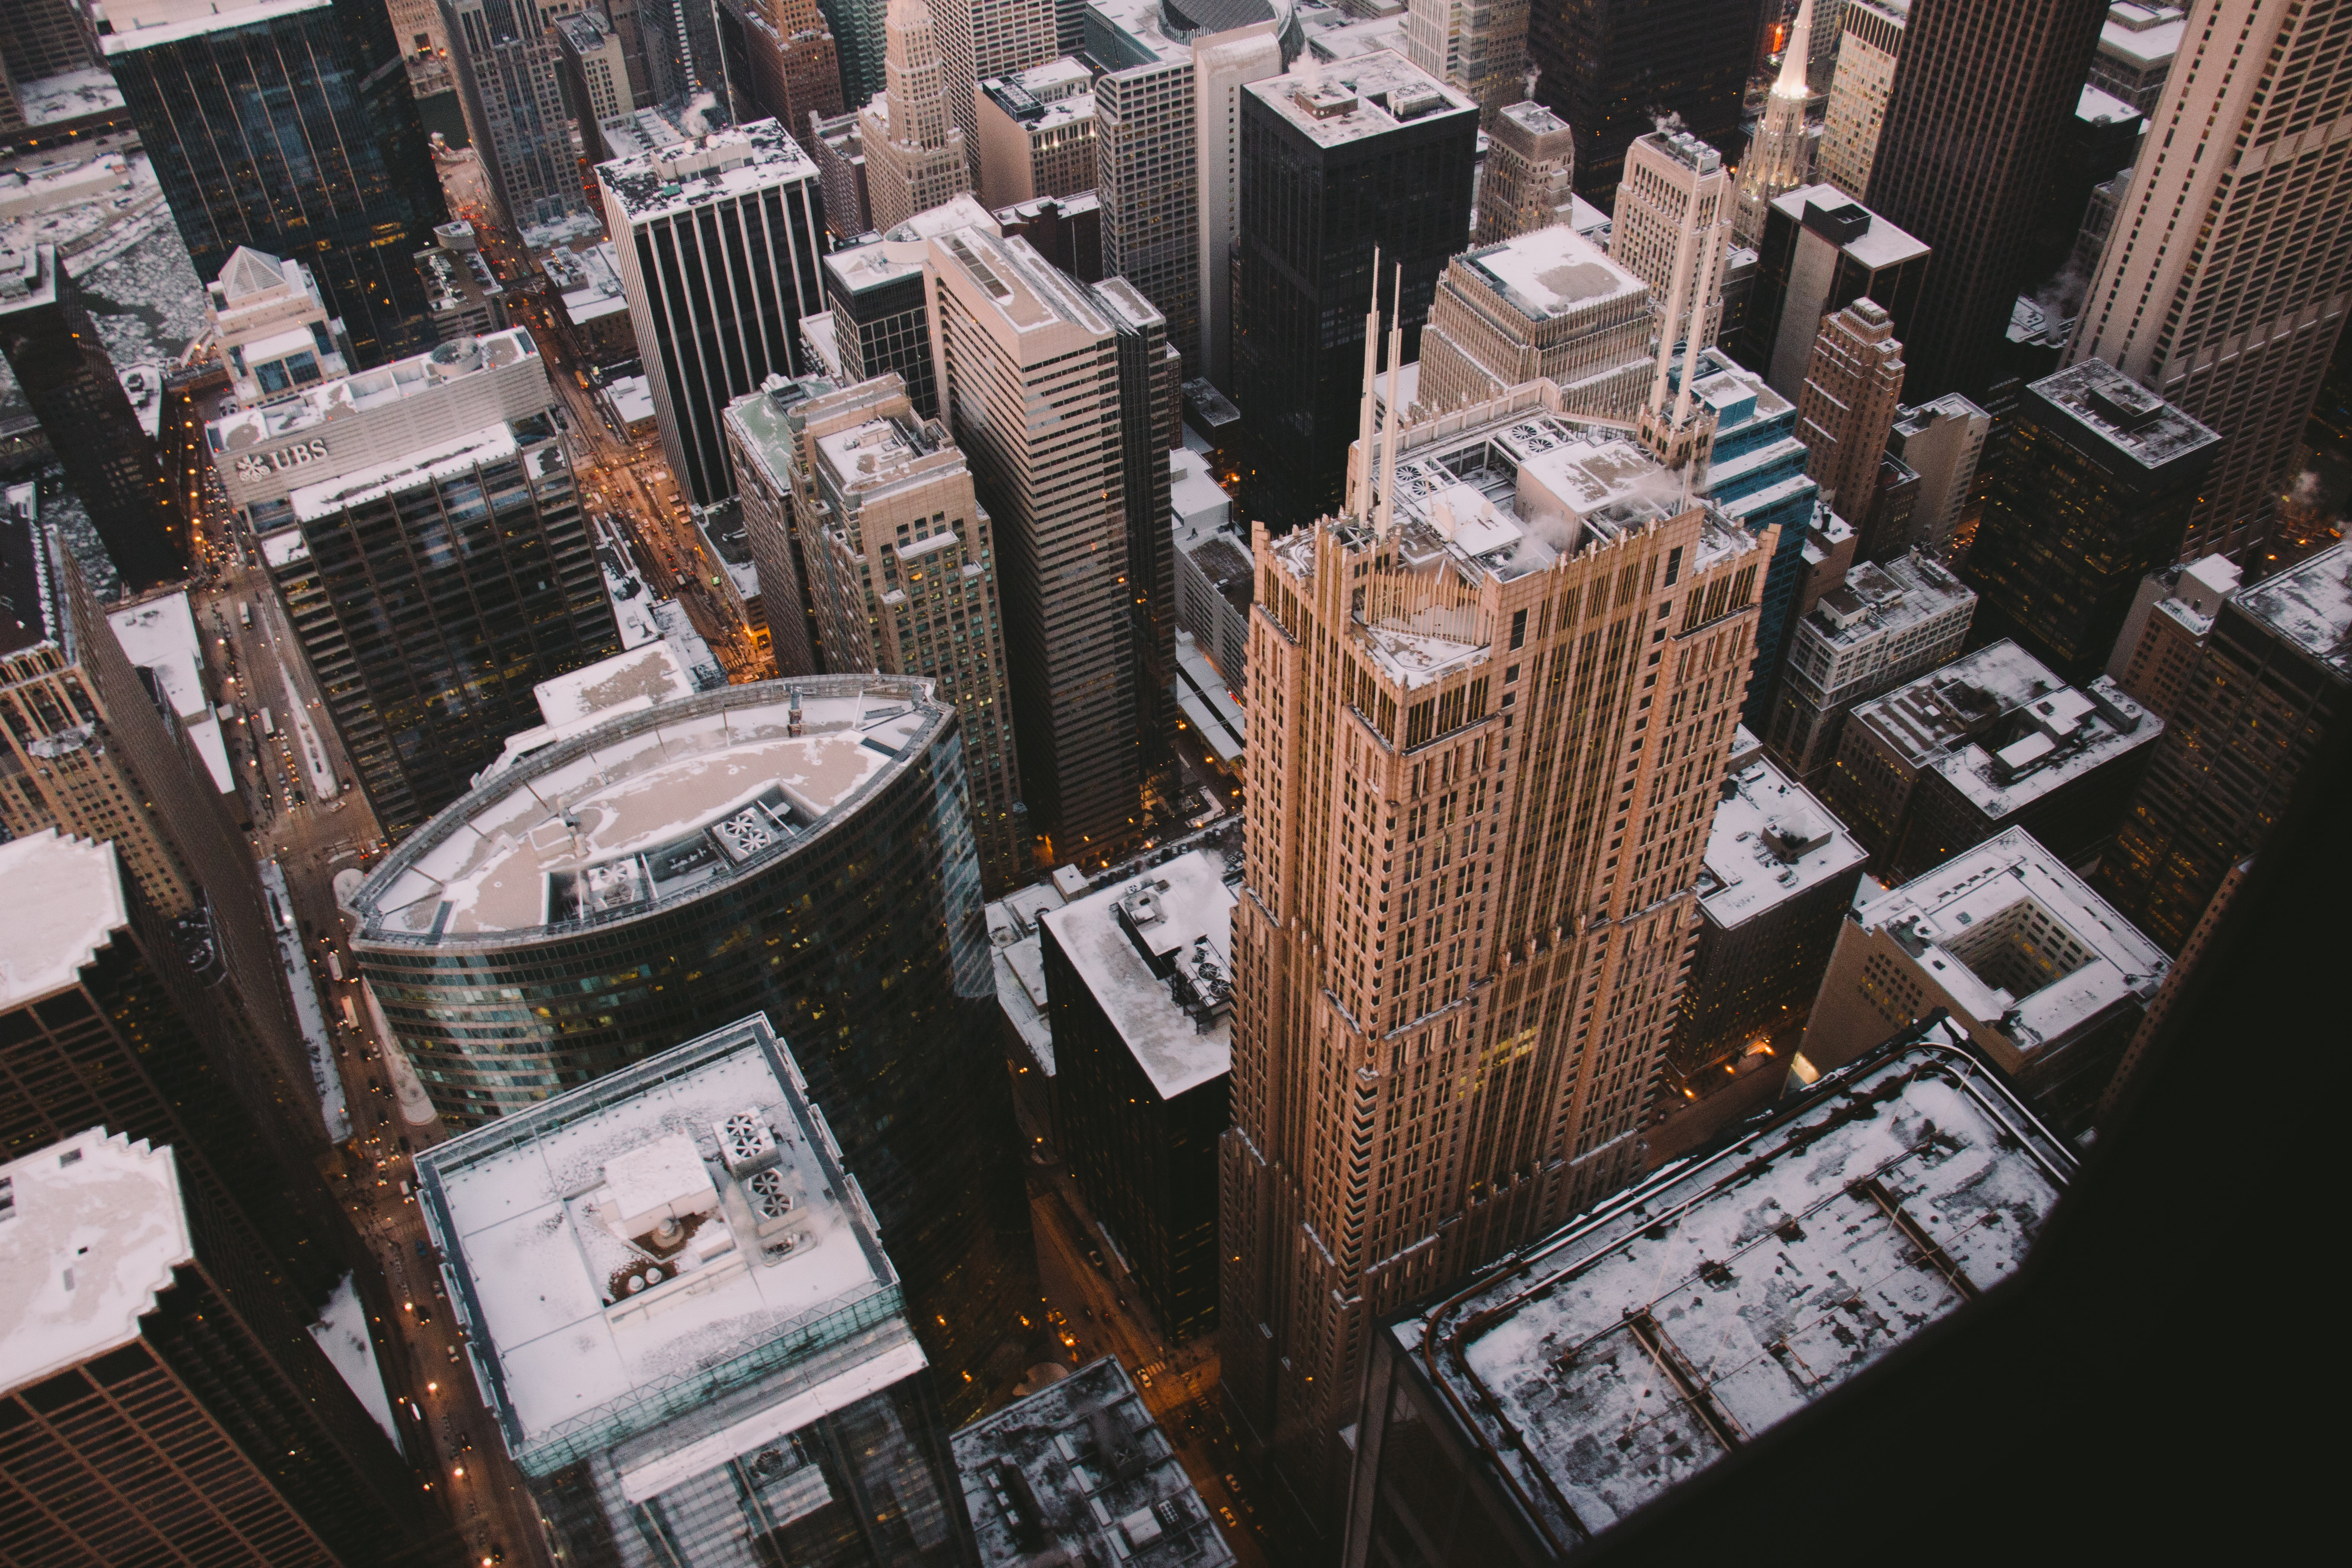 A high shot of high-rises in a city